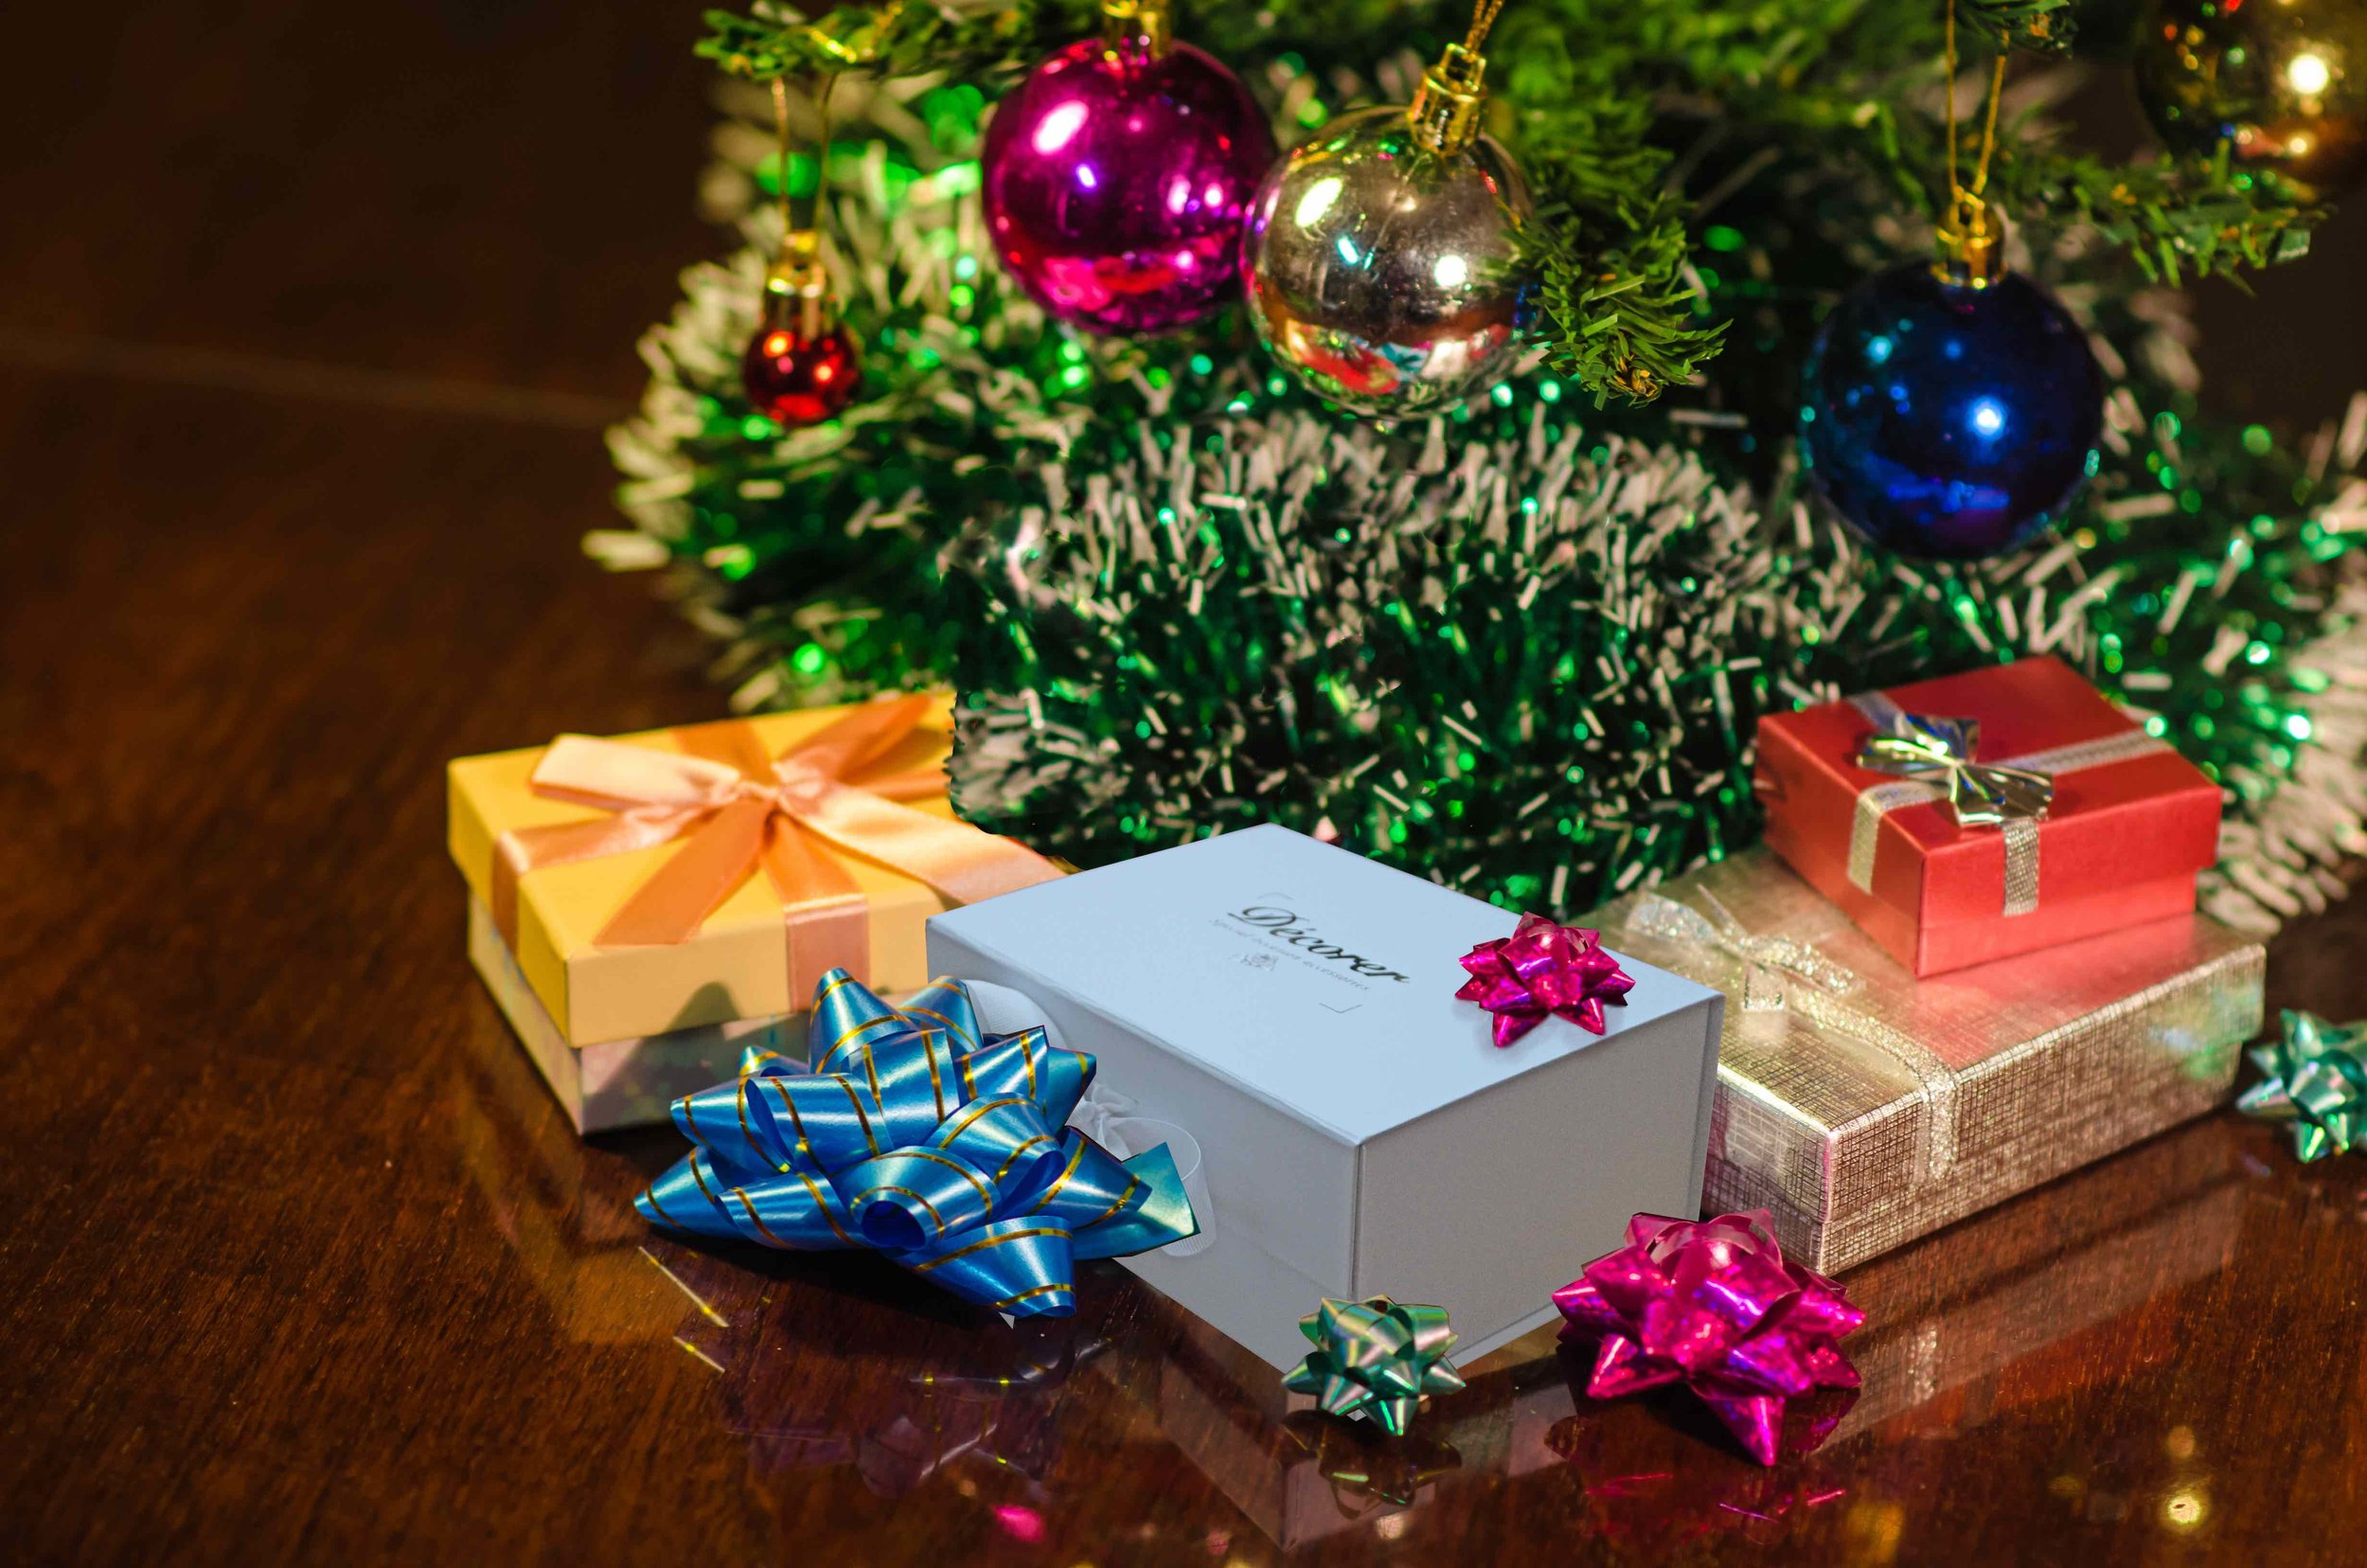 Décorer accessories - Come beautifully packaged, it will be a pleasure to watch your loved ones open your gift and see their delight!